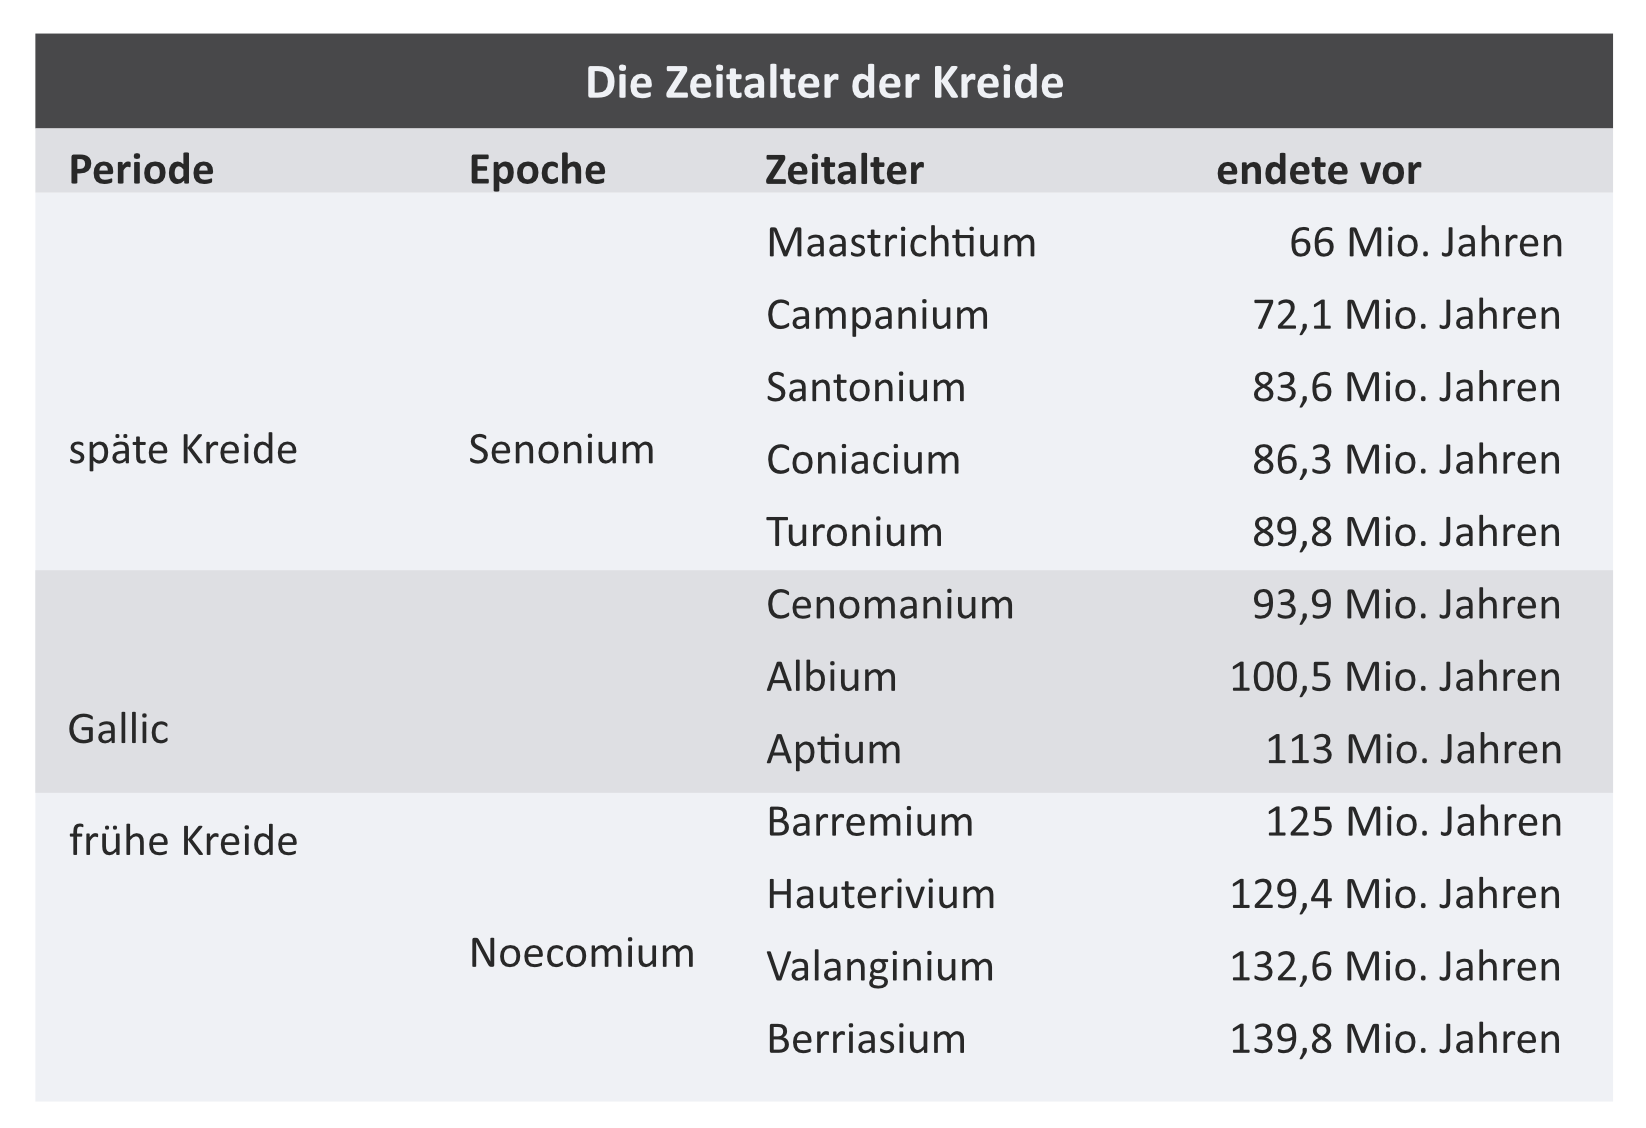 Zeitalter der Kreide / © Dinodata.de. Creative Commons 4.0 International (CC BY 4.0)